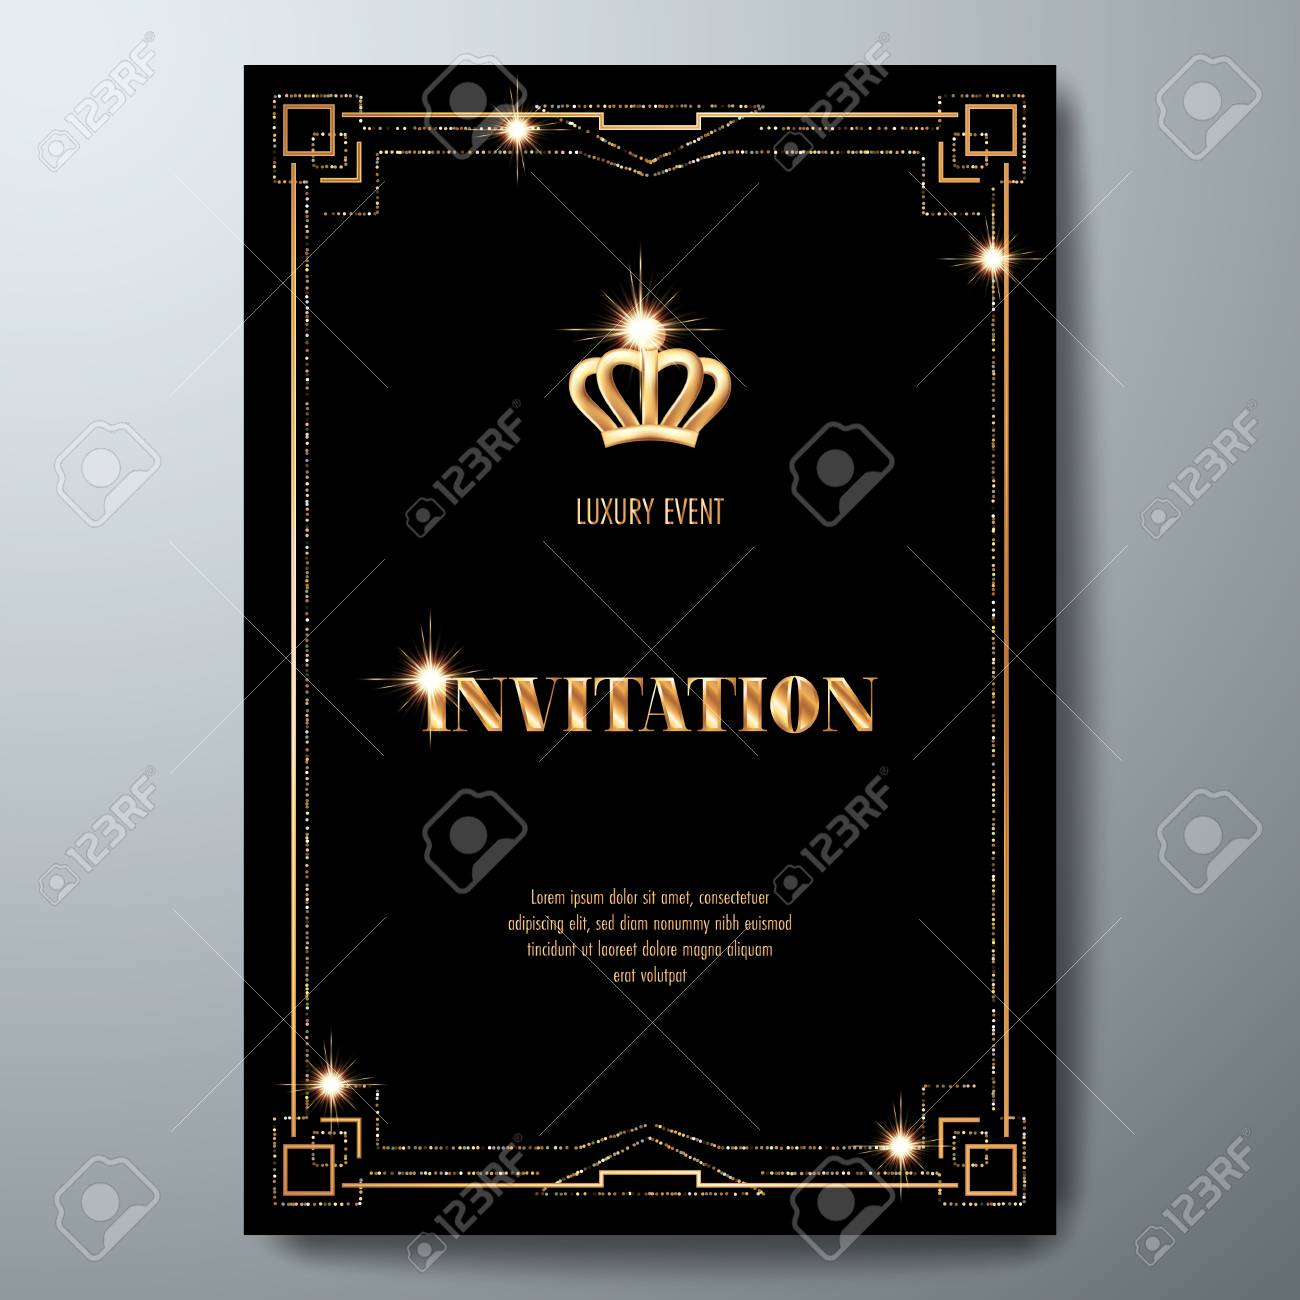 Vip Invitation Template With Golden Crown And Art Deco Frame